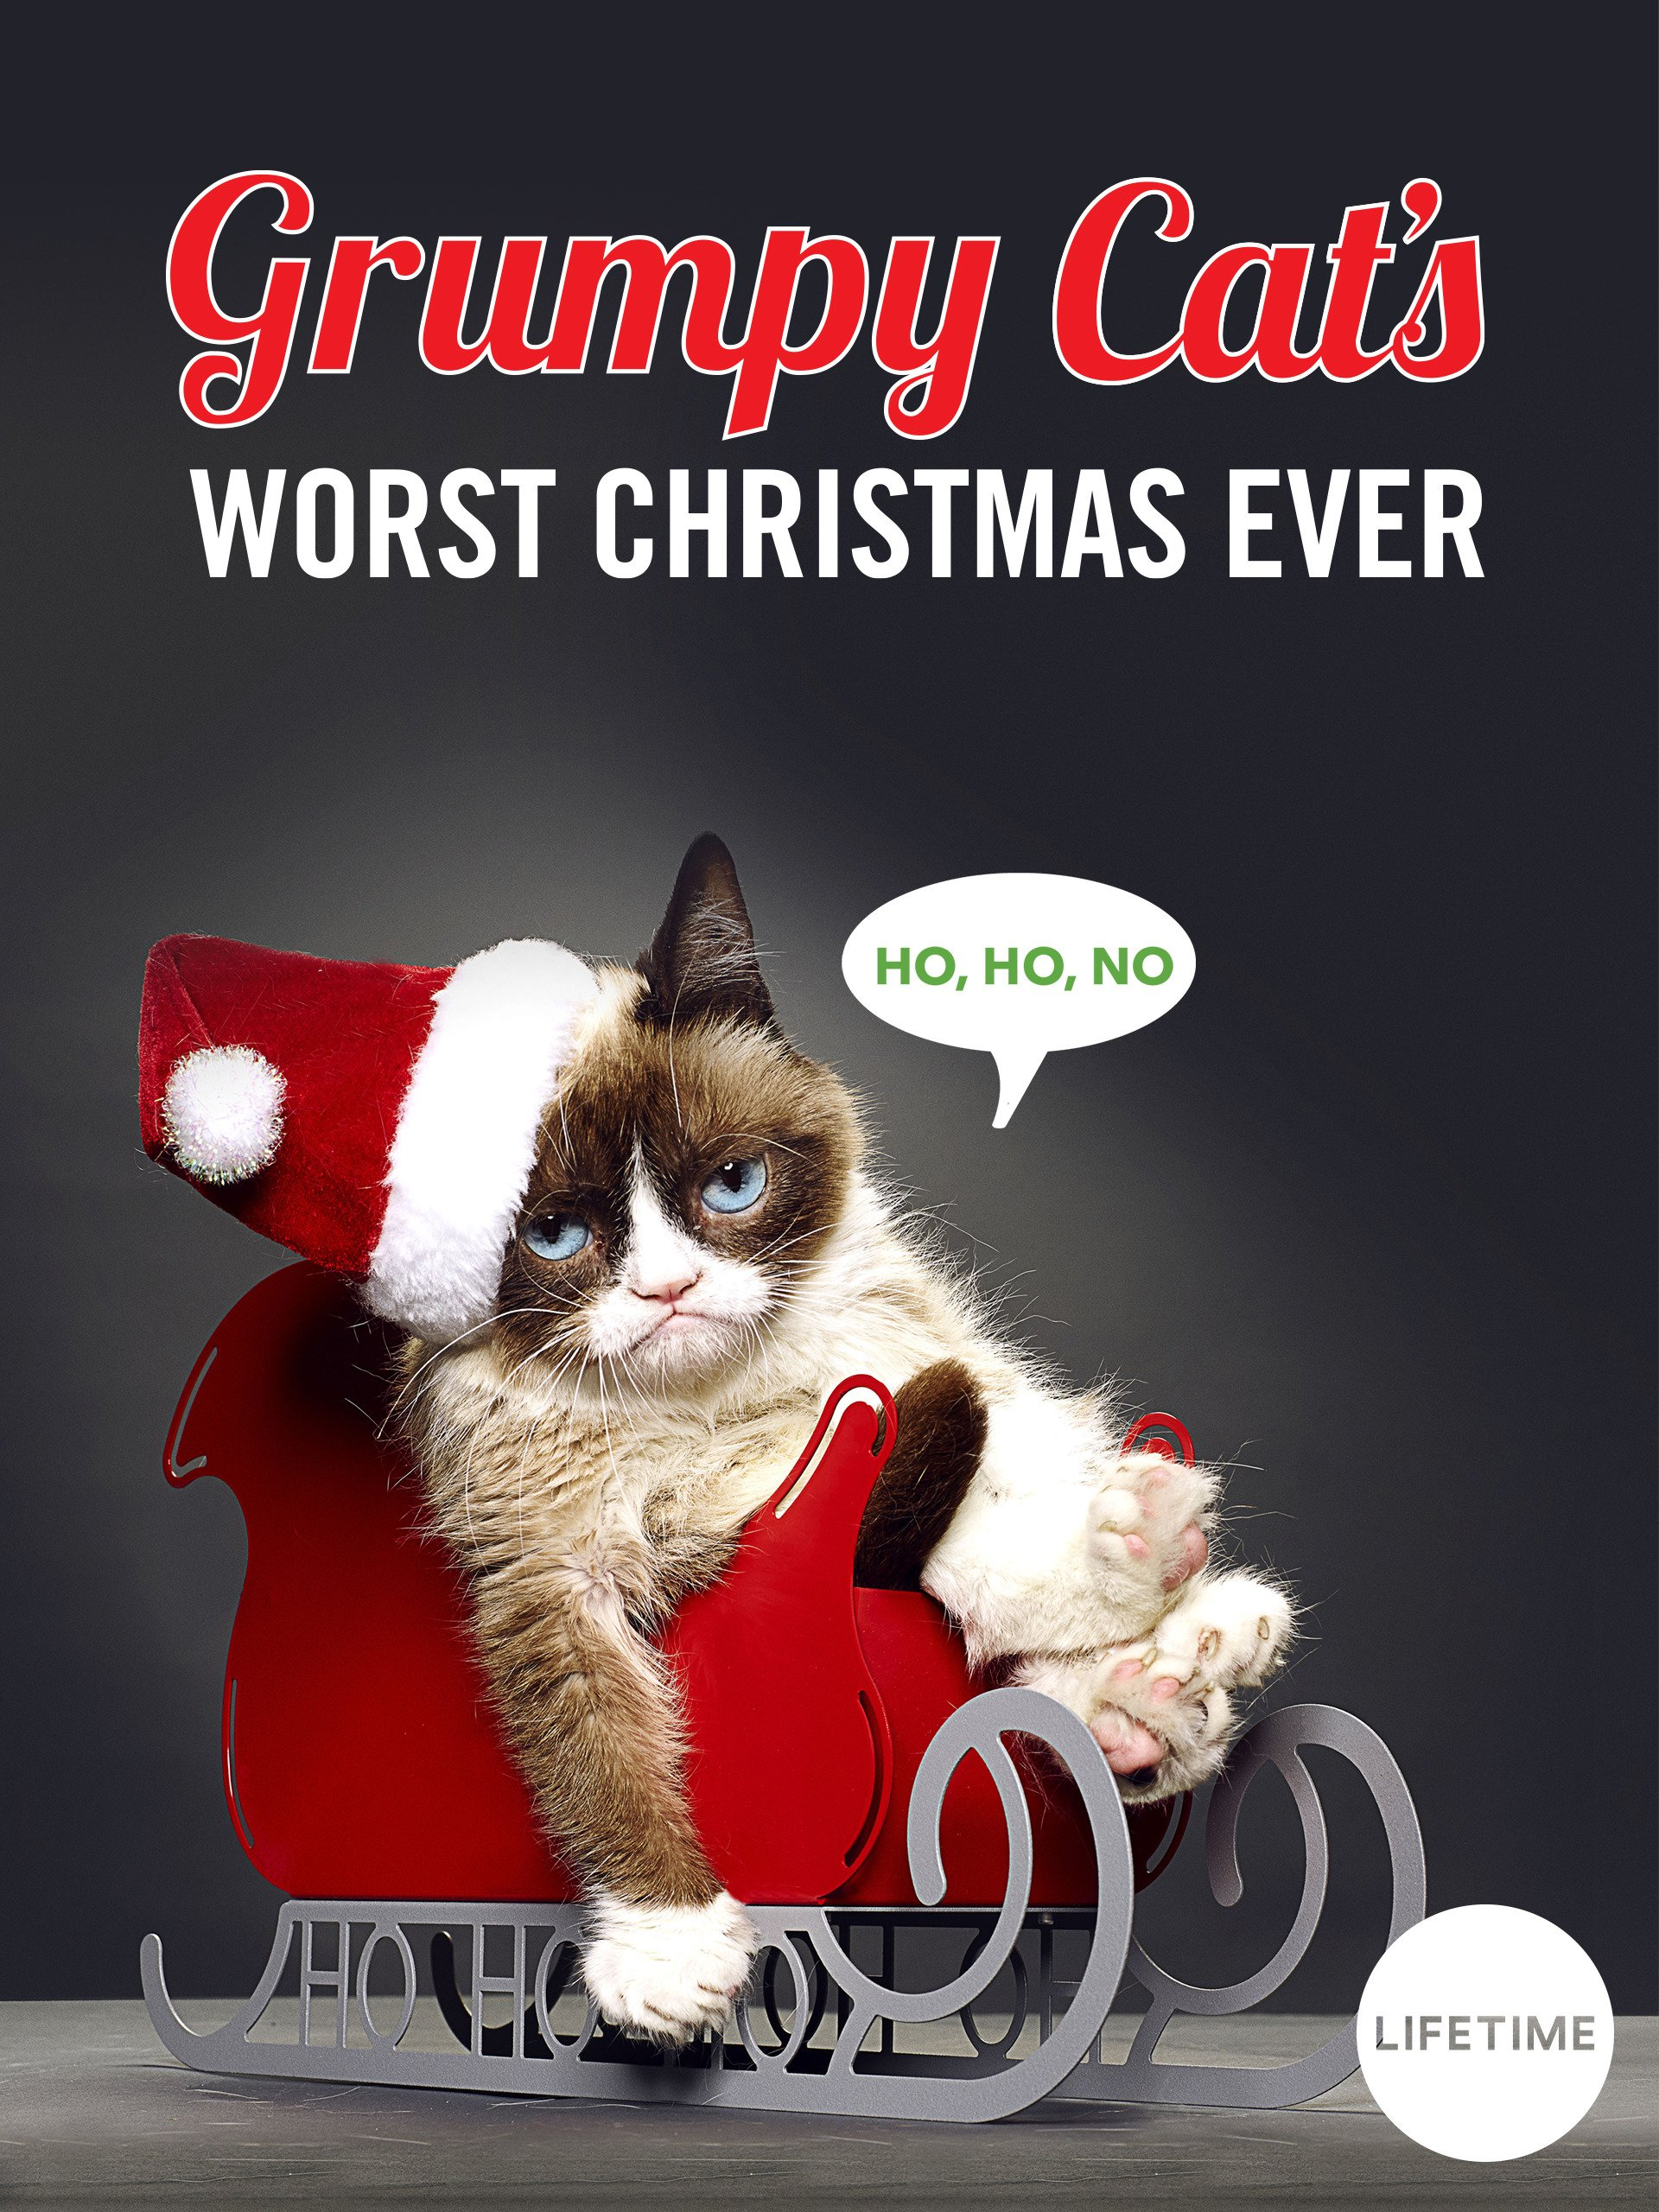 Amazon grumpy cats worst christmas ever grumpy cat amazon grumpy cats worst christmas ever grumpy cat productions inc amazon digital services llc thecheapjerseys Choice Image